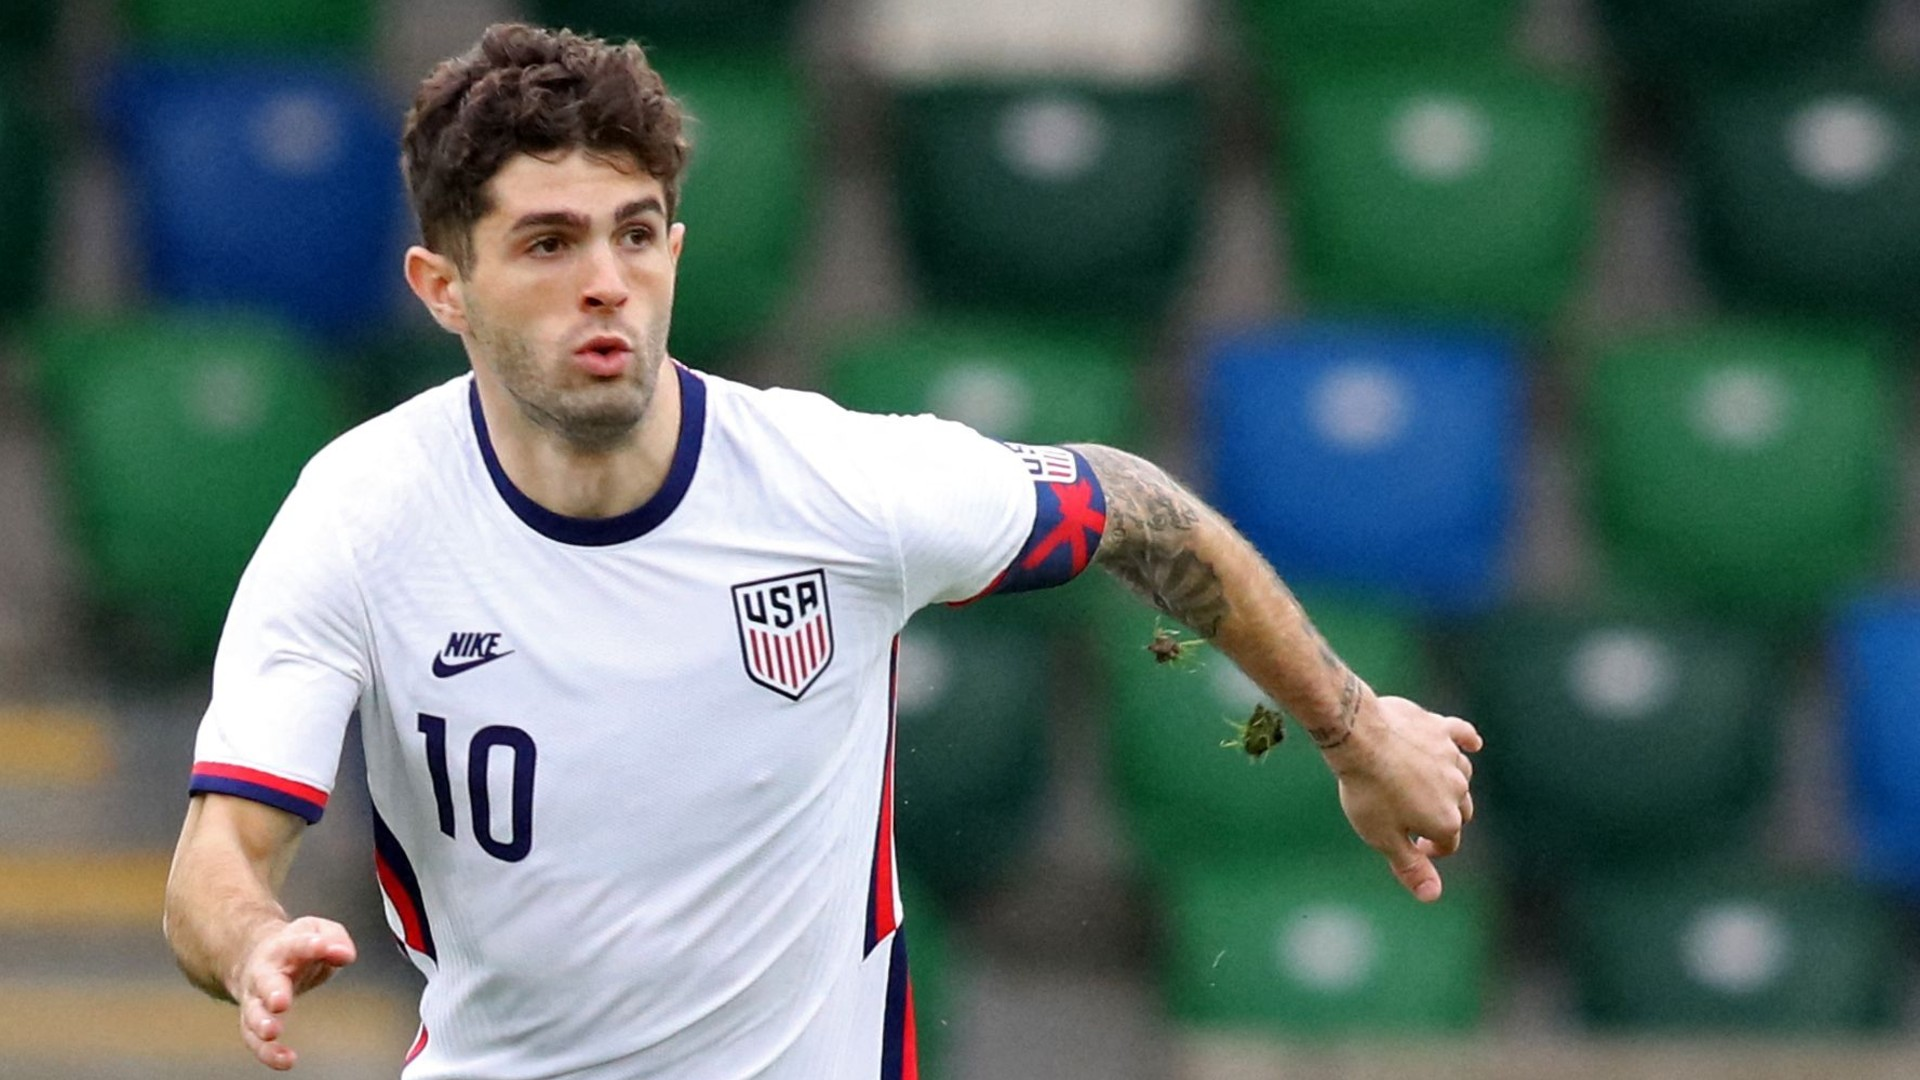 USMNT selects Cincinnati to host Mexico World Cup qualifier